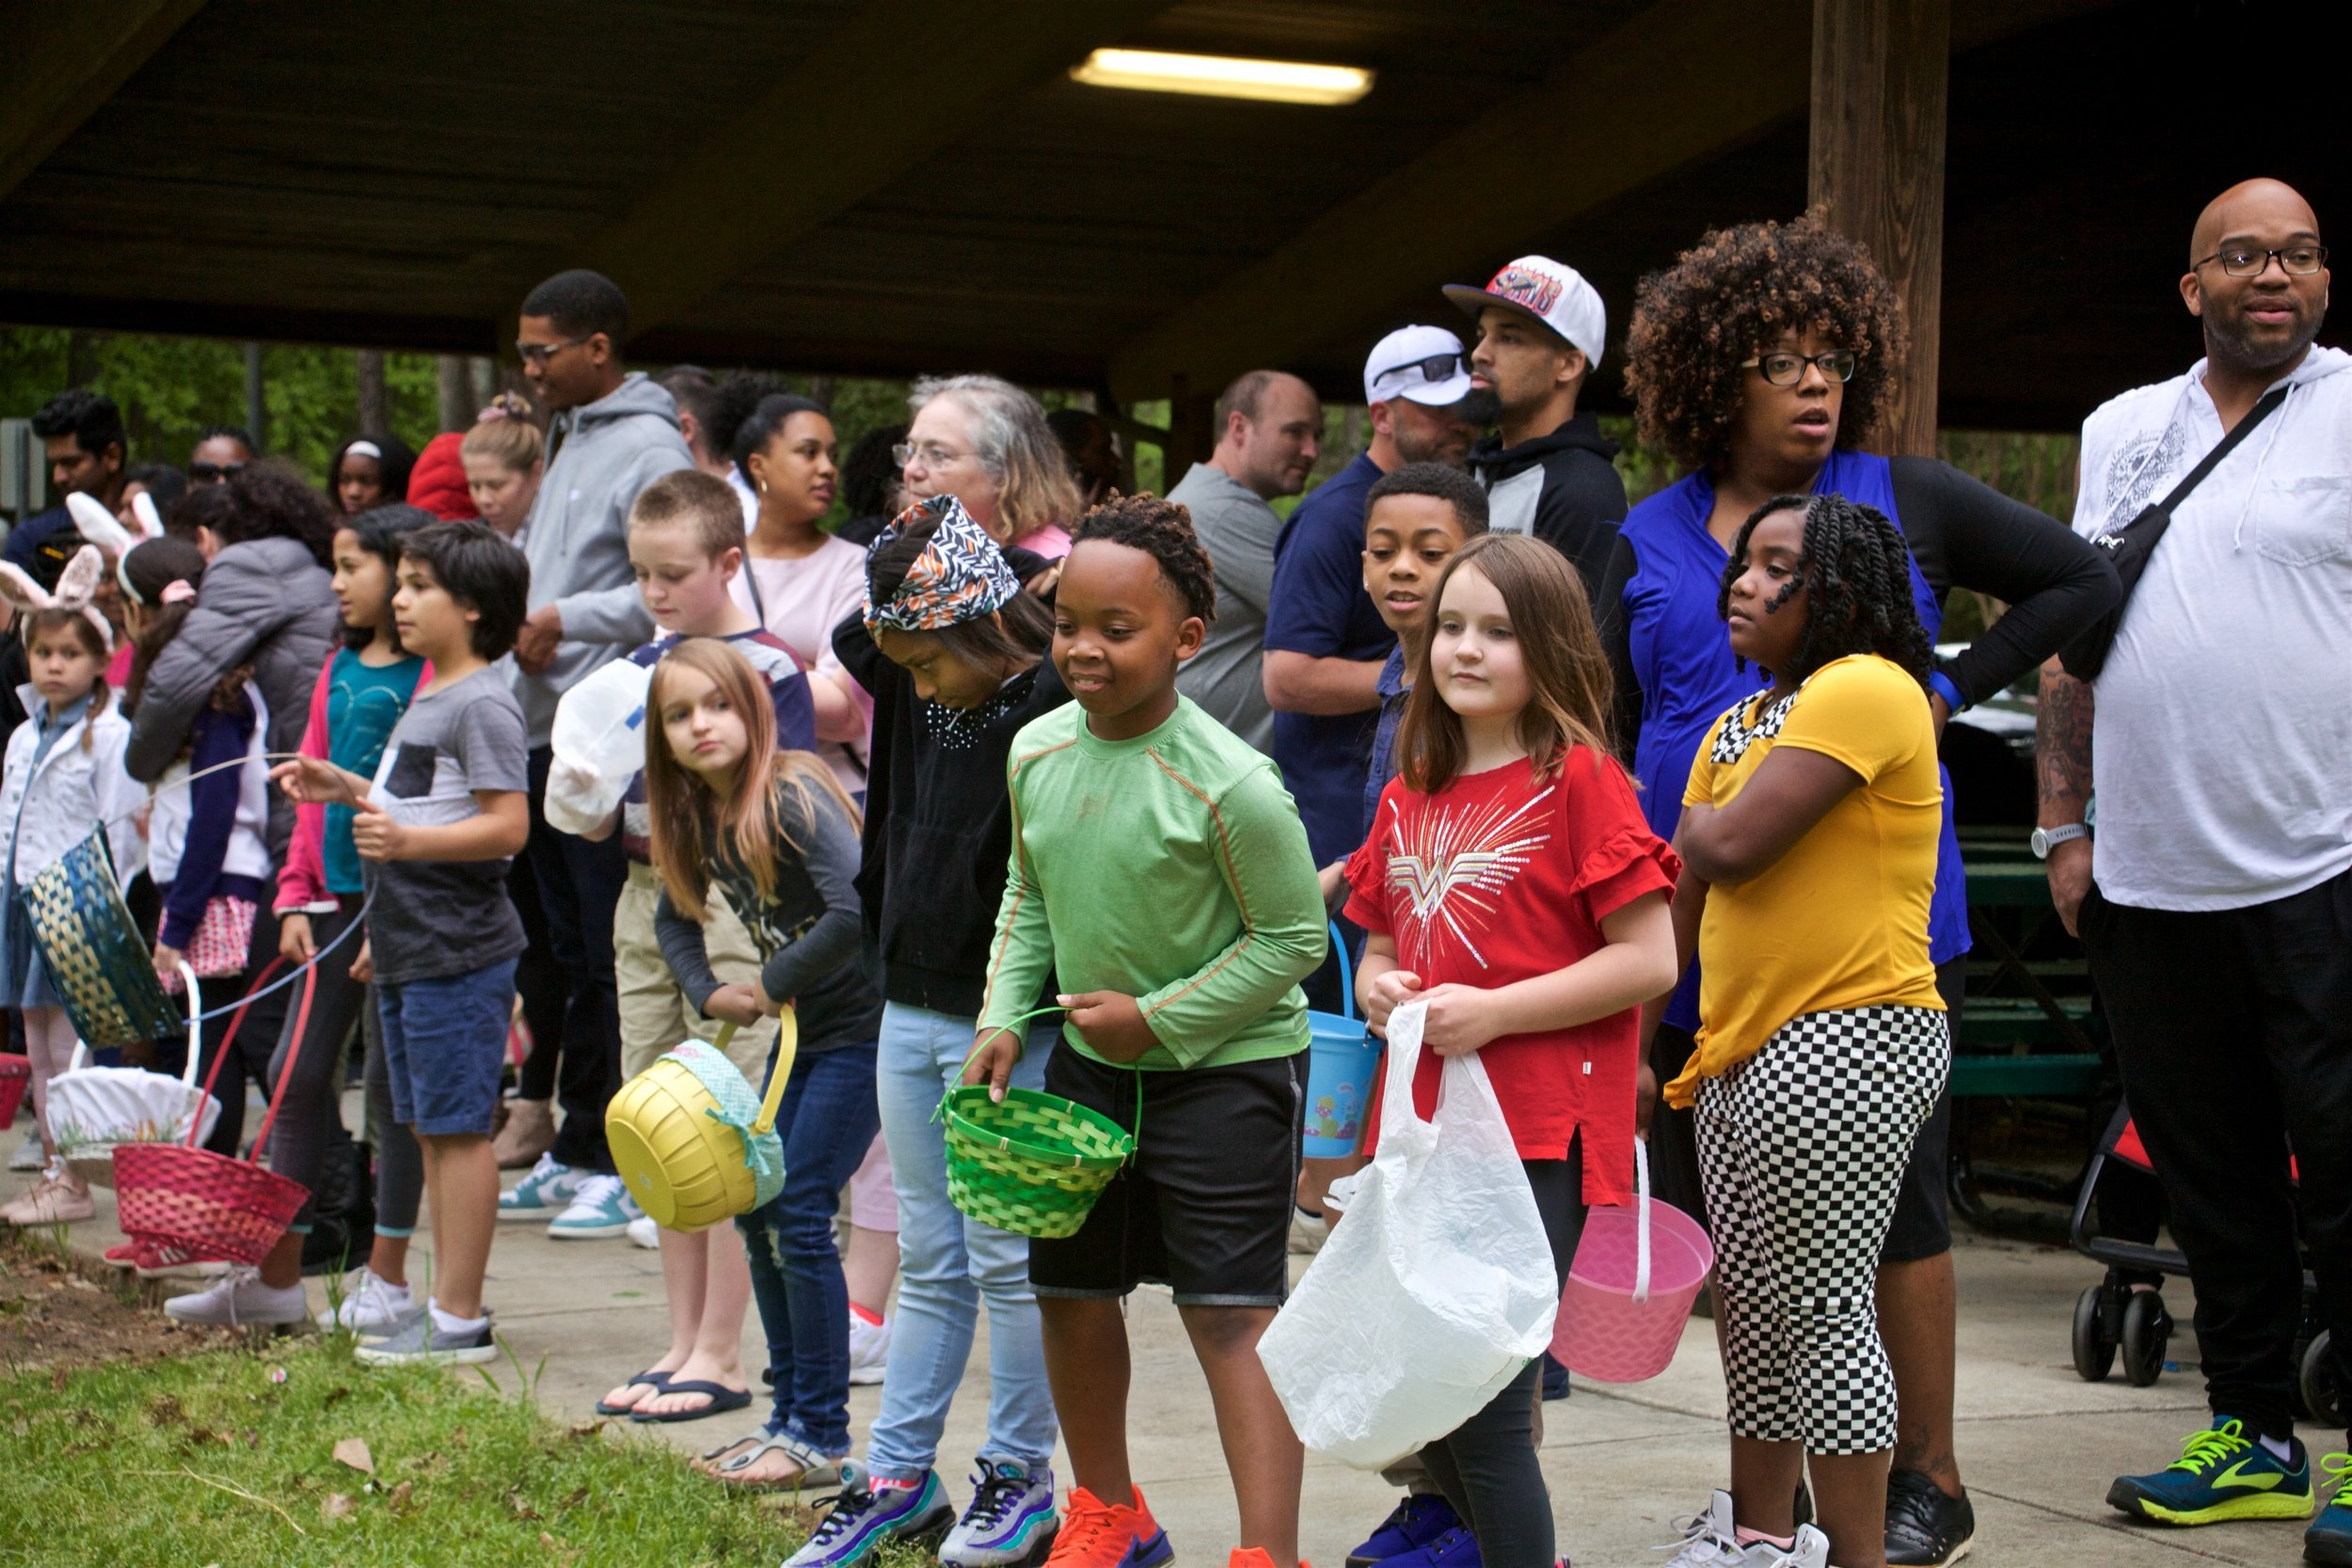 2019.4.20 Raleigh NPHC Easter Egg Hunt by StanChambersJr Photography 16.jpg